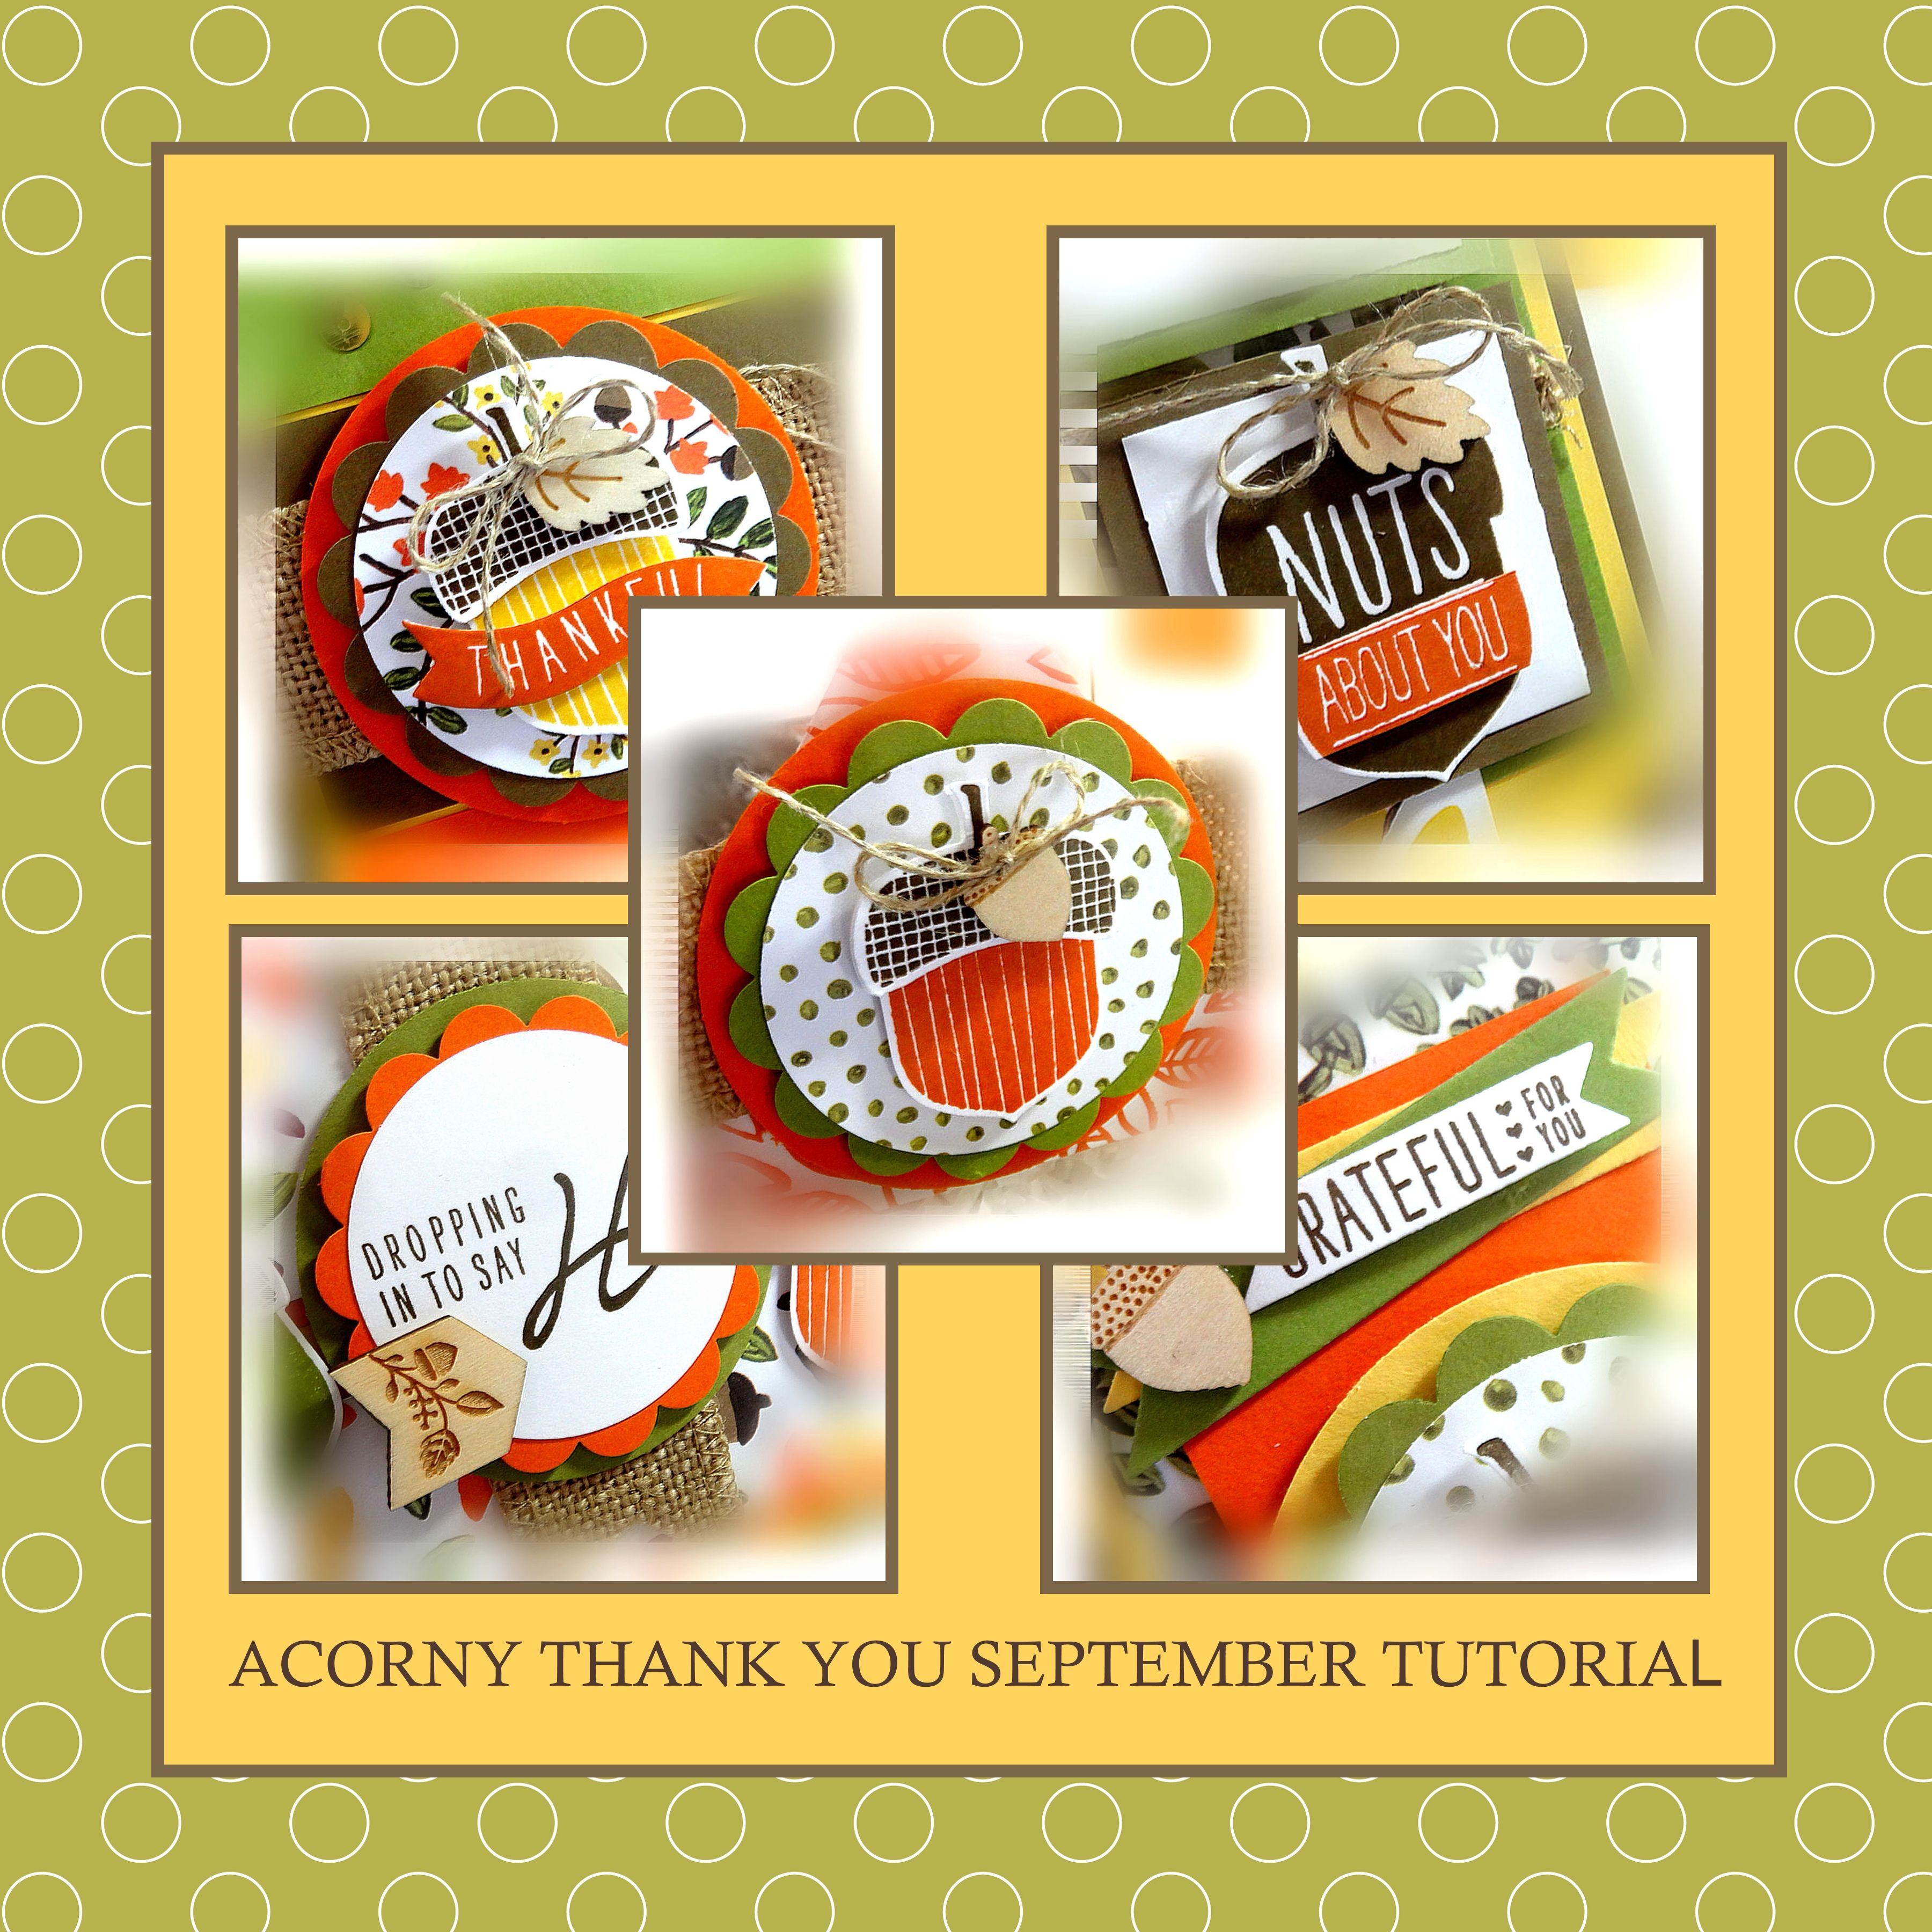 Acorny Thank You, Me, My Stamps and I, Stampin' Up